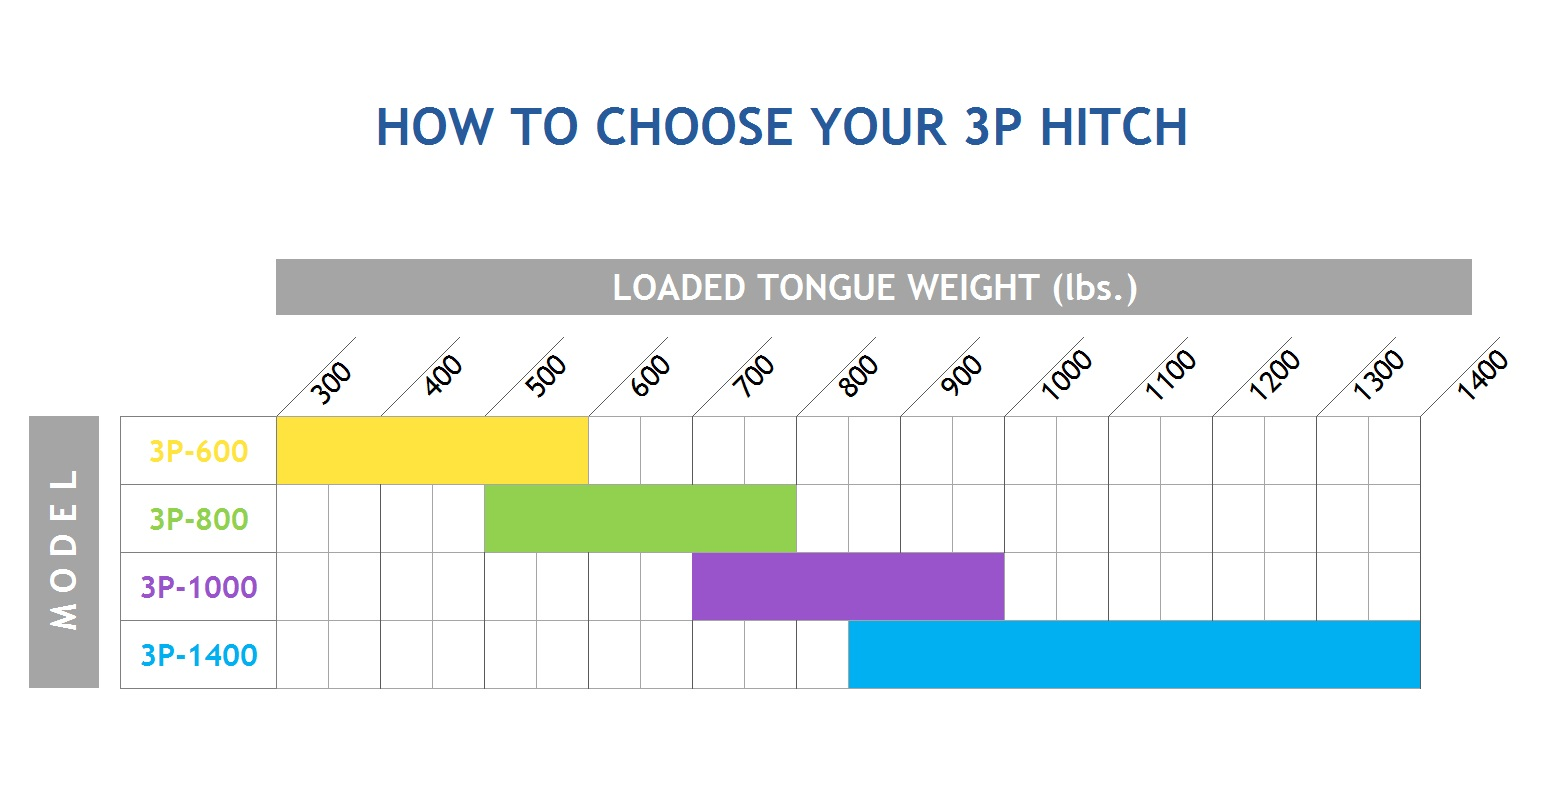 chart-how-to-choose-your-3p-hitch.jpg